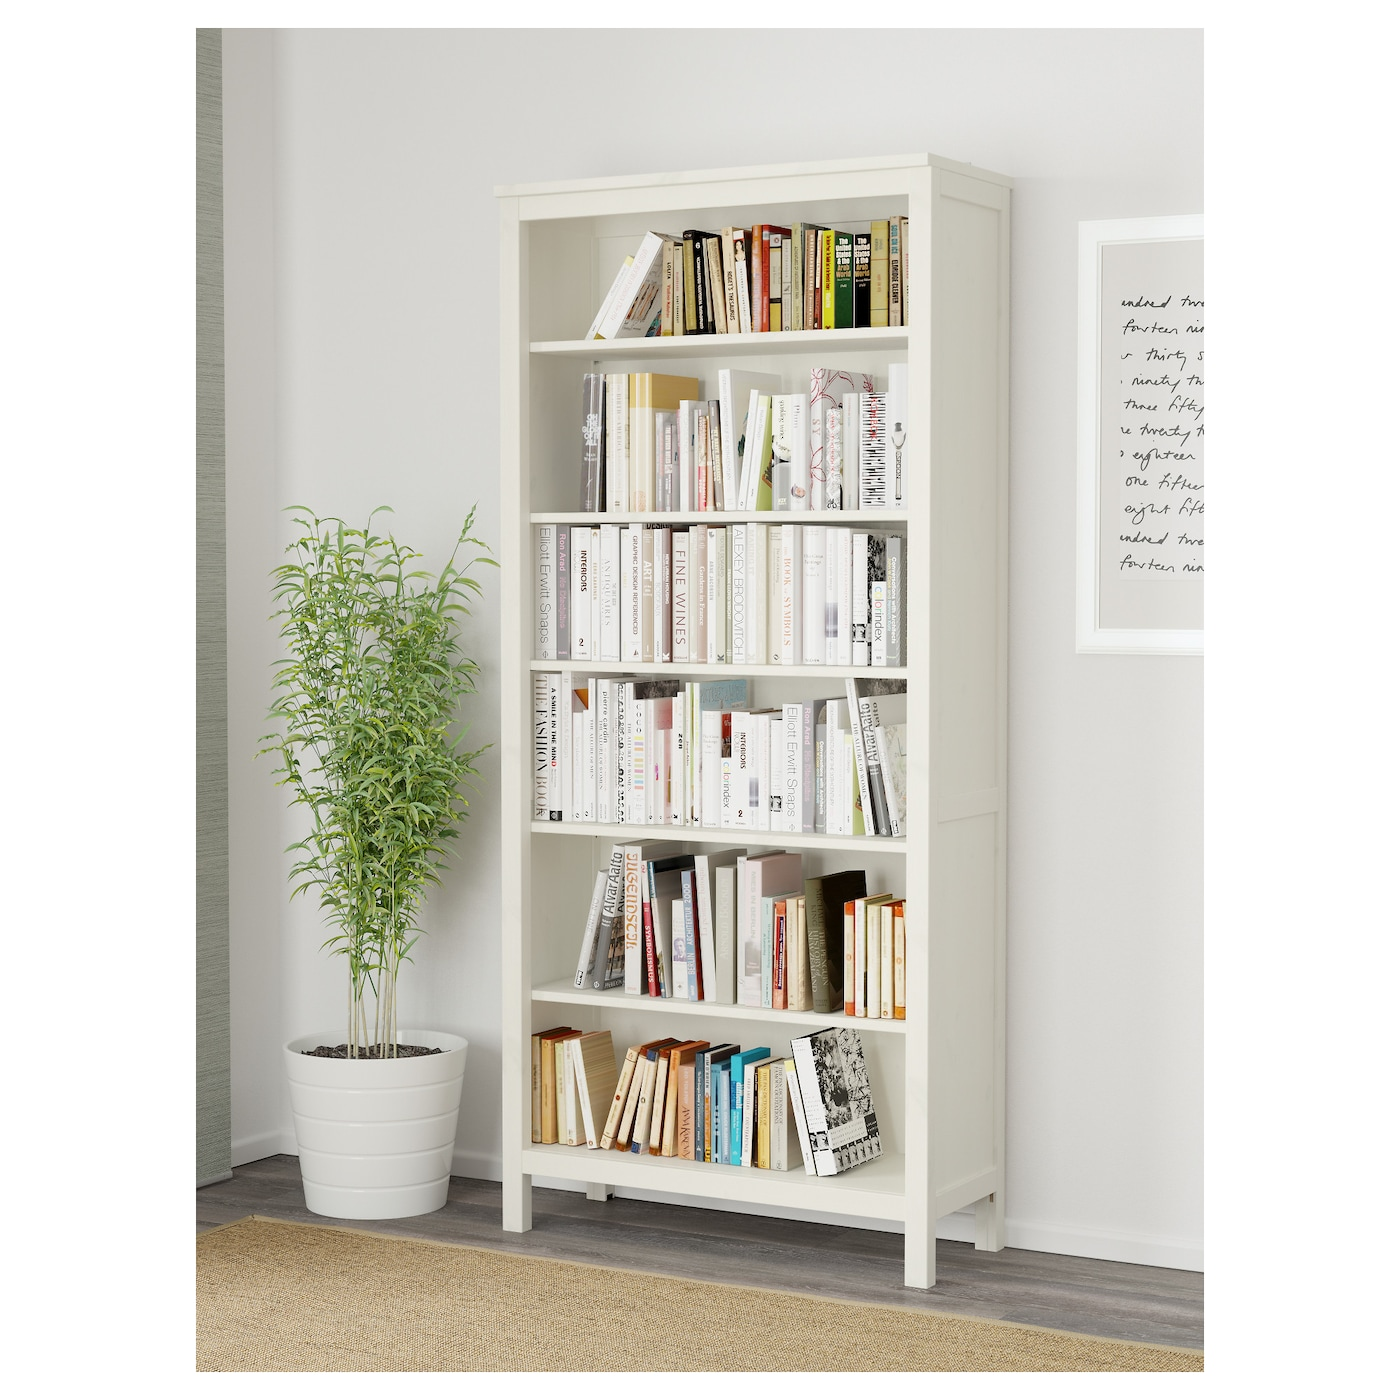 hemnes biblioth que teint blanc 90x197 cm ikea. Black Bedroom Furniture Sets. Home Design Ideas